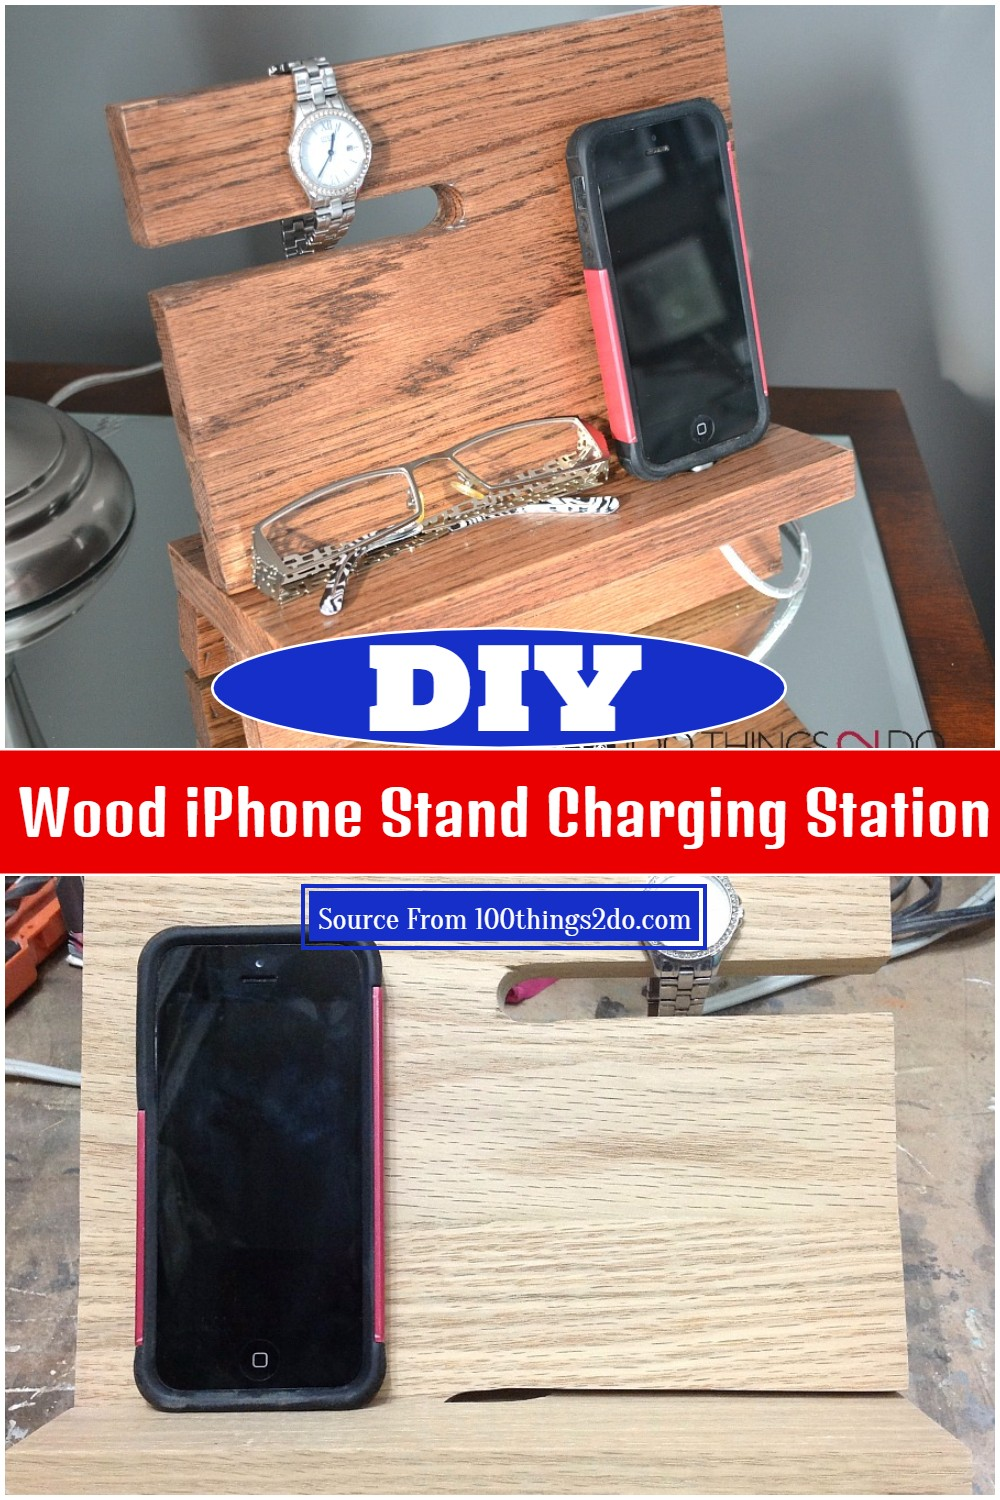 DIY Wood iPhone Stand Charging Station